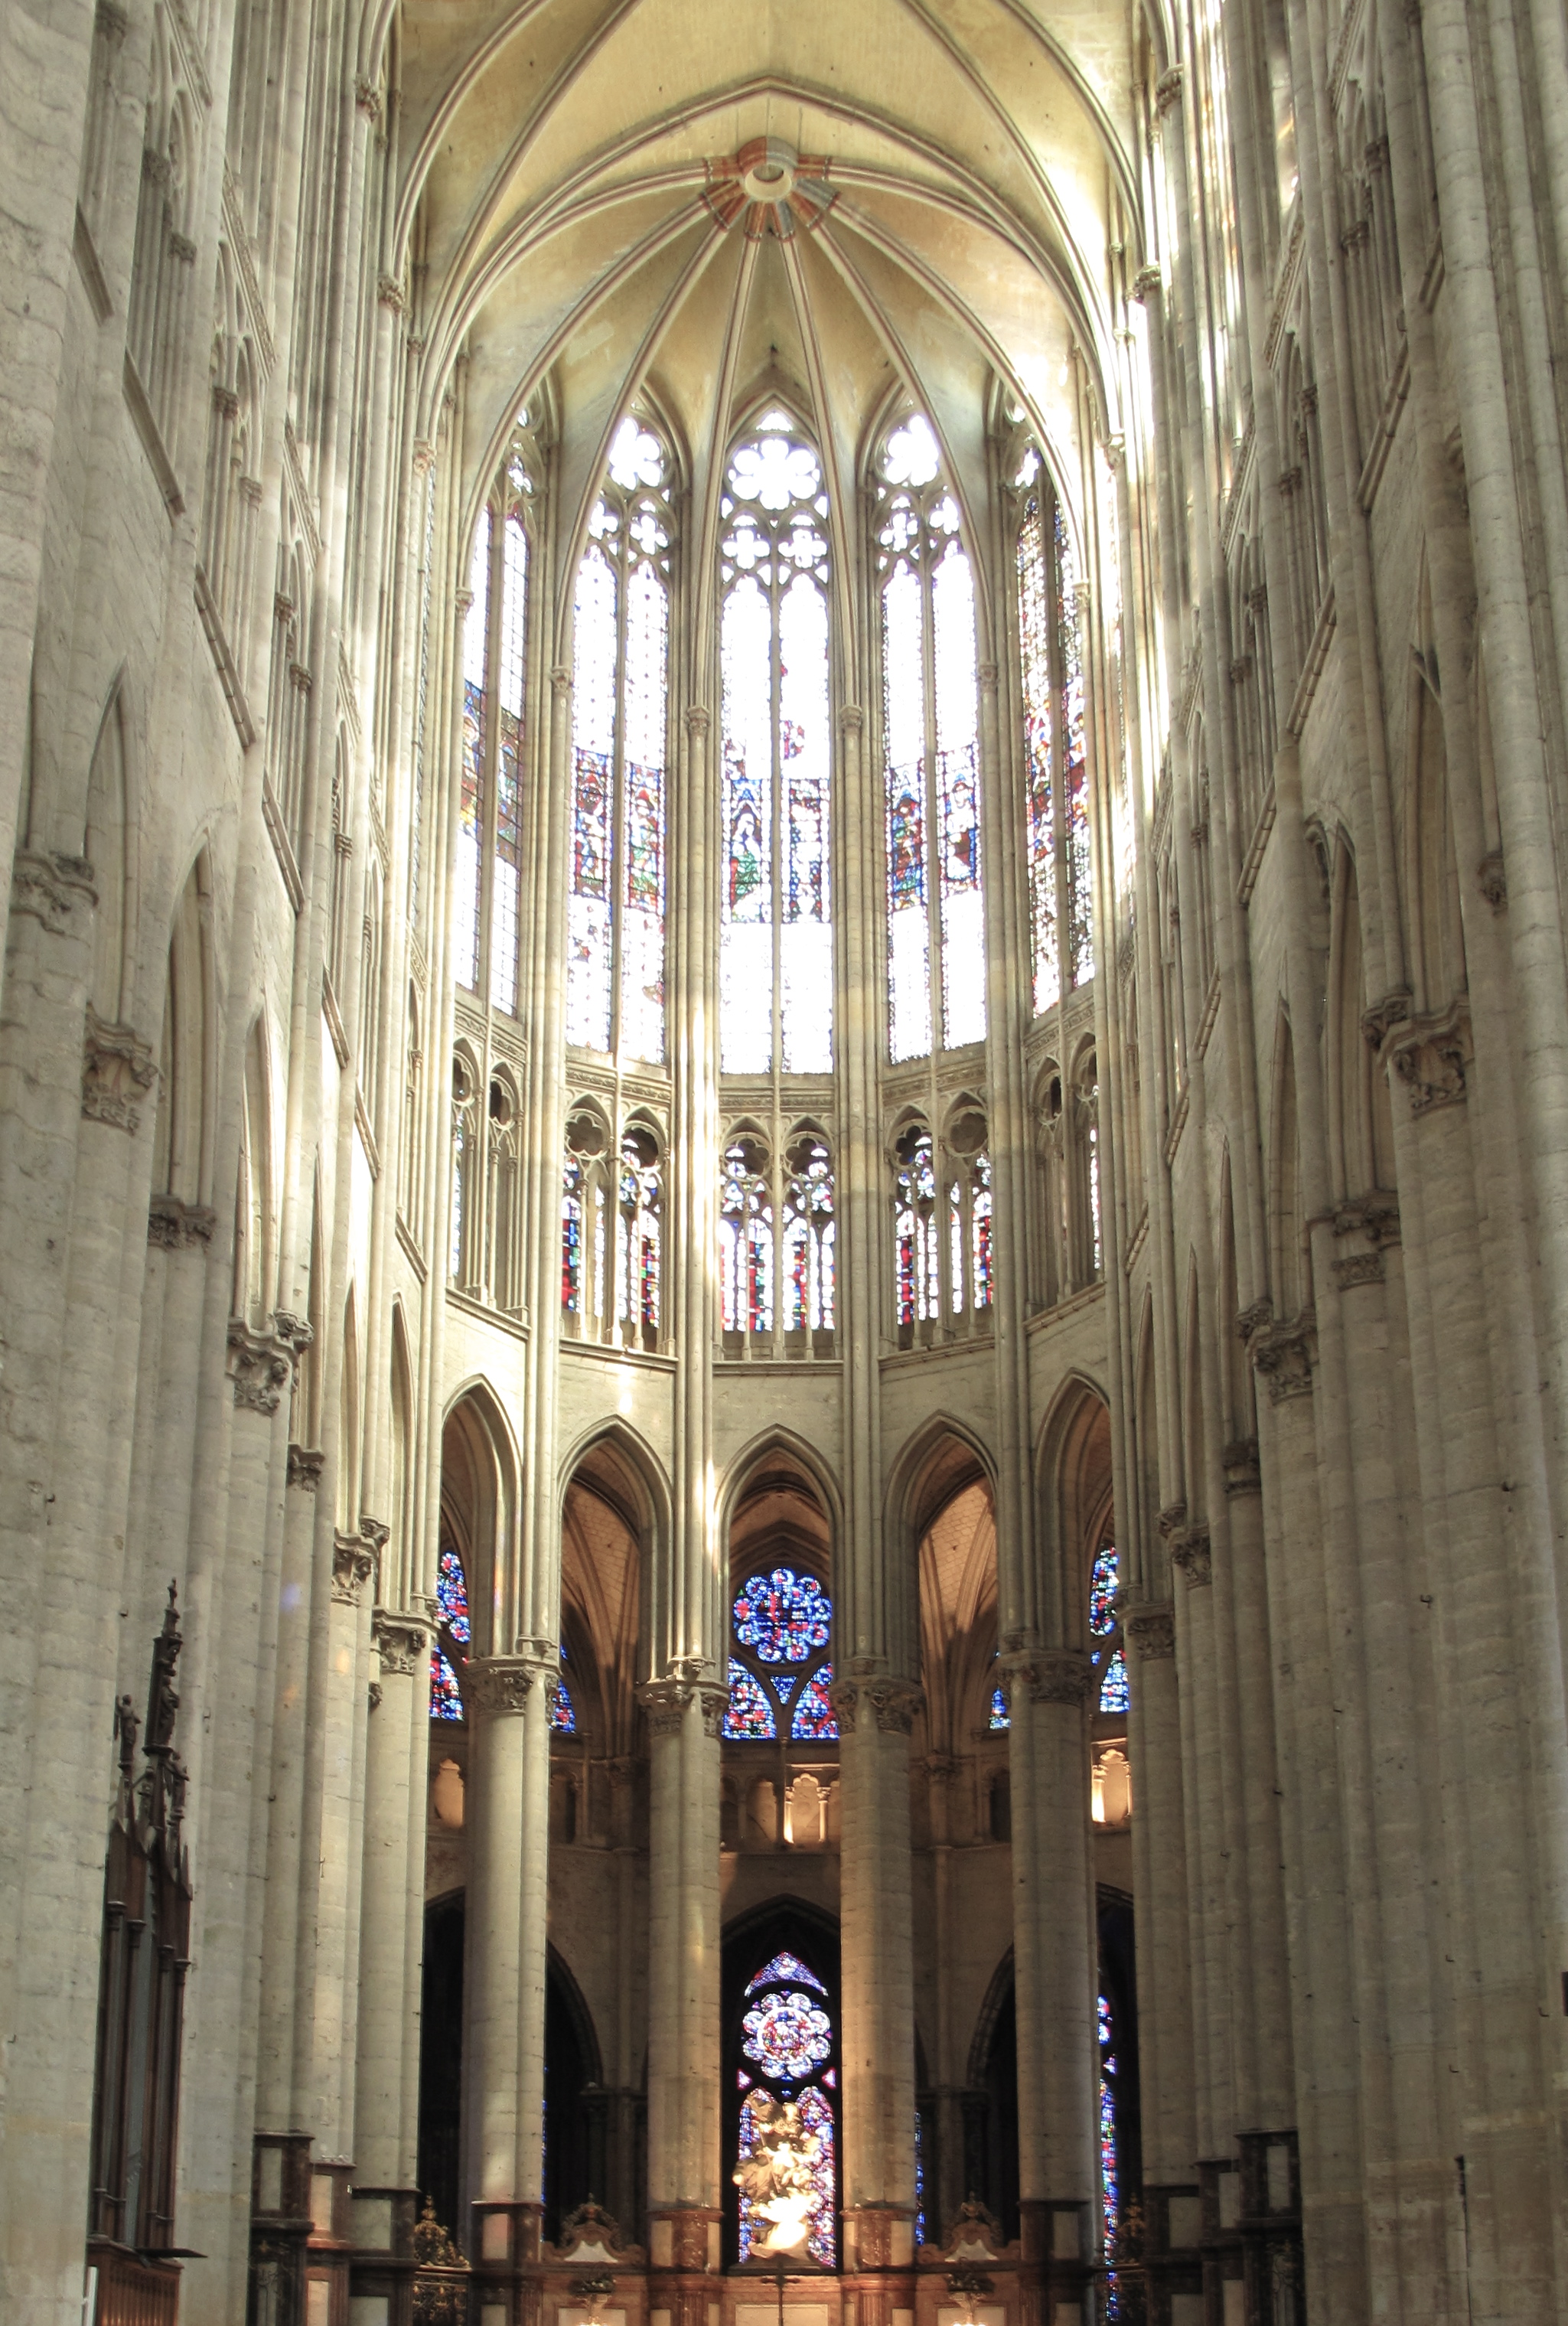 Inside the transept of Beauvais amazingly tall cathedral!